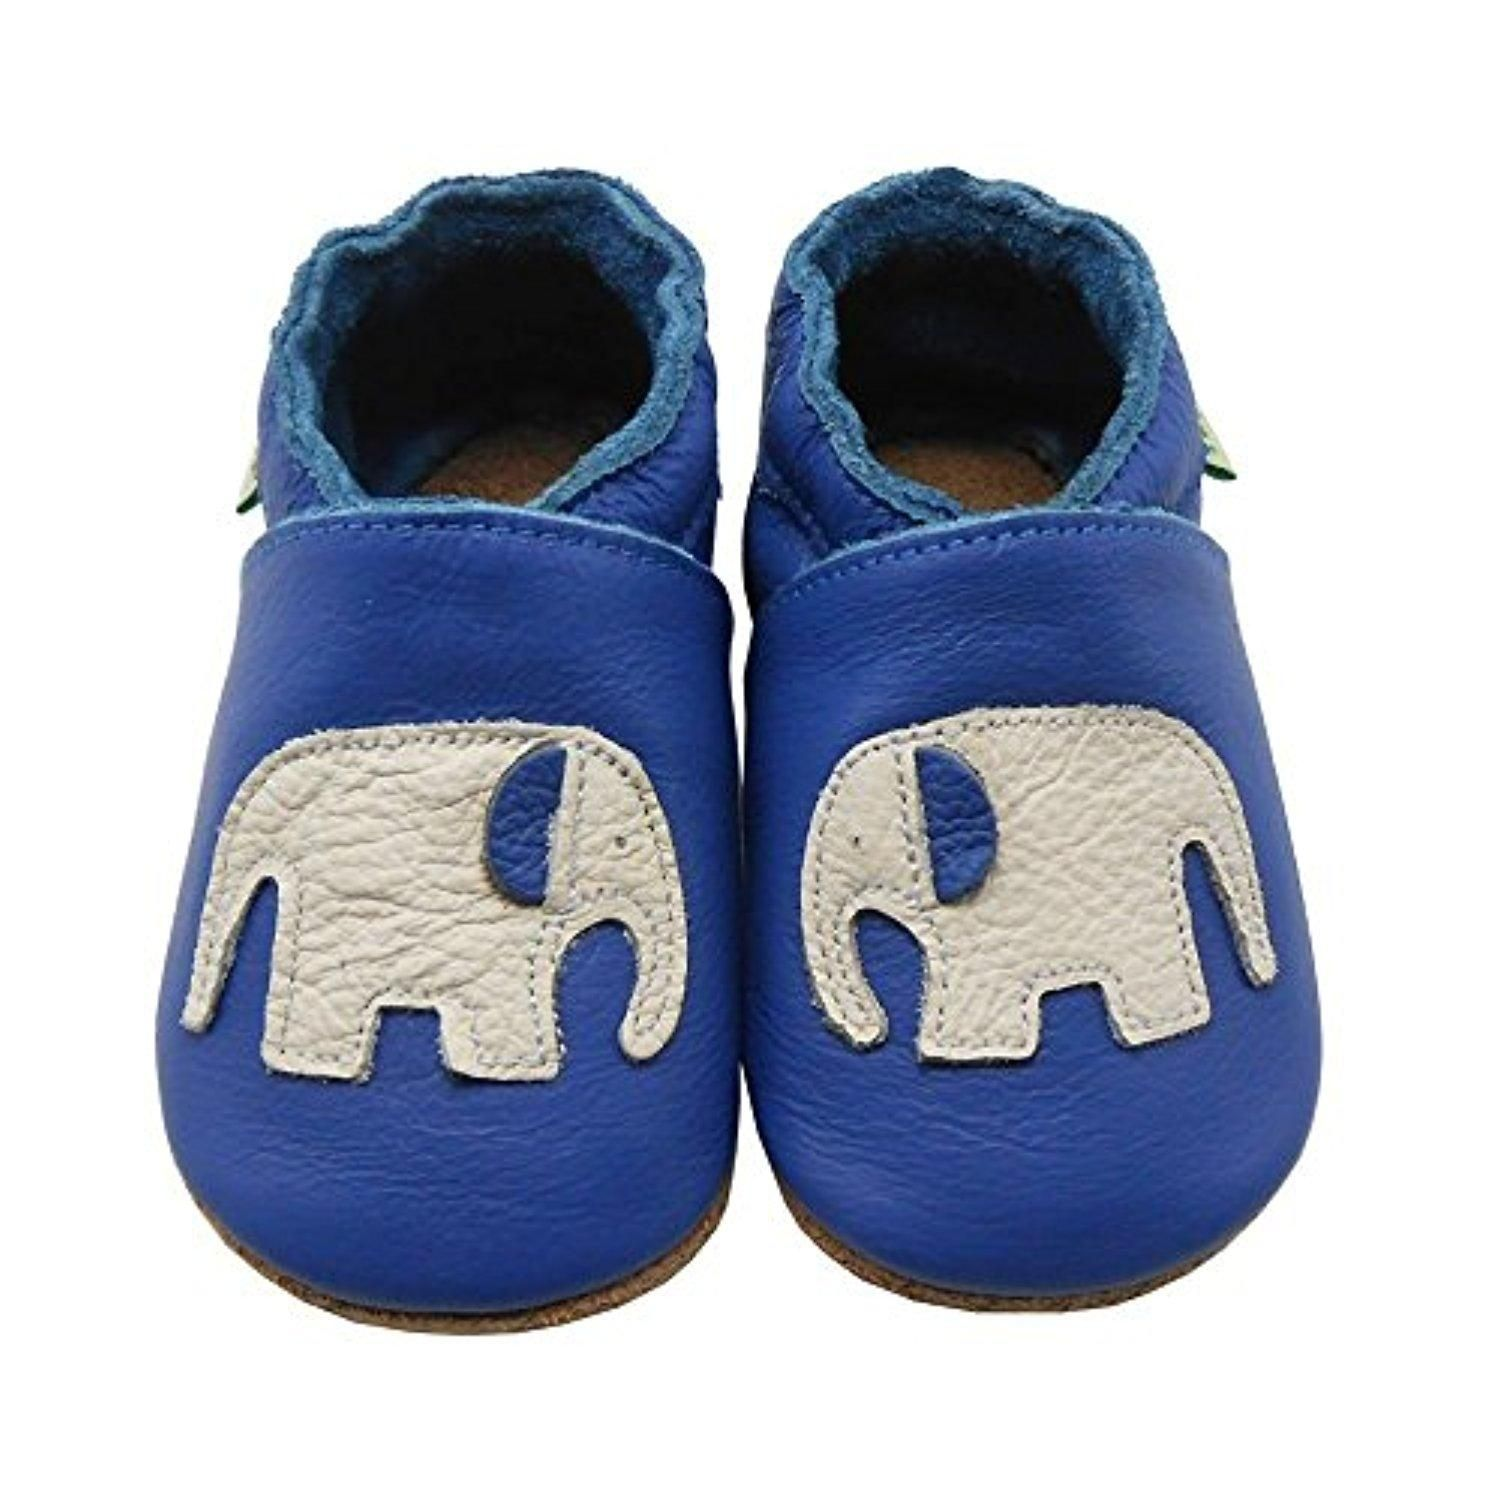 Sayoyo Soft Sole Leather Baby Shoes Baby Moccasins Elephant Blue 6